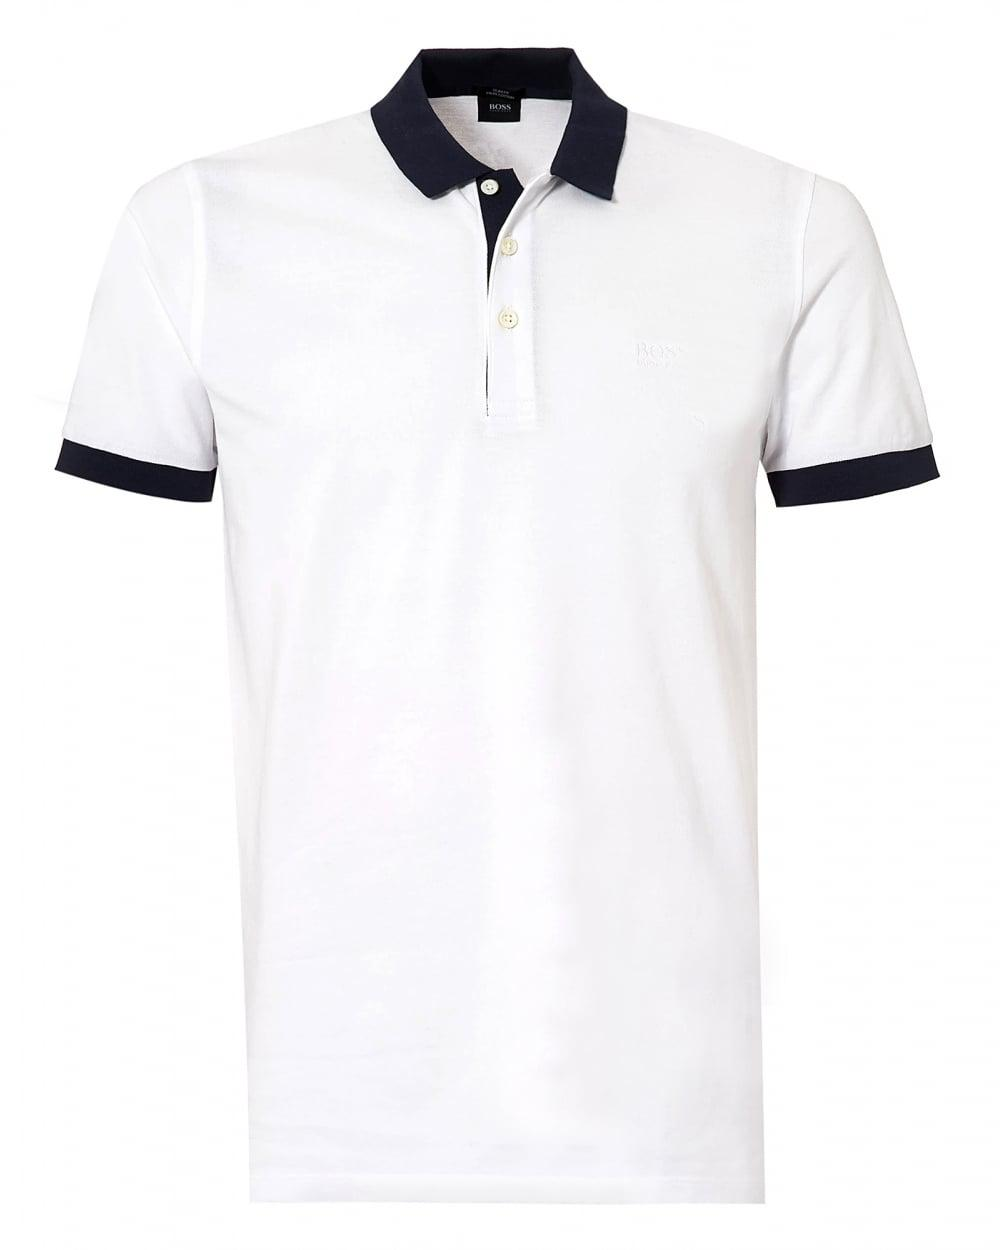 2a1e71269 BOSS Phillipson Polo Shirt, White Slim Fit Polo in White for Men - Lyst